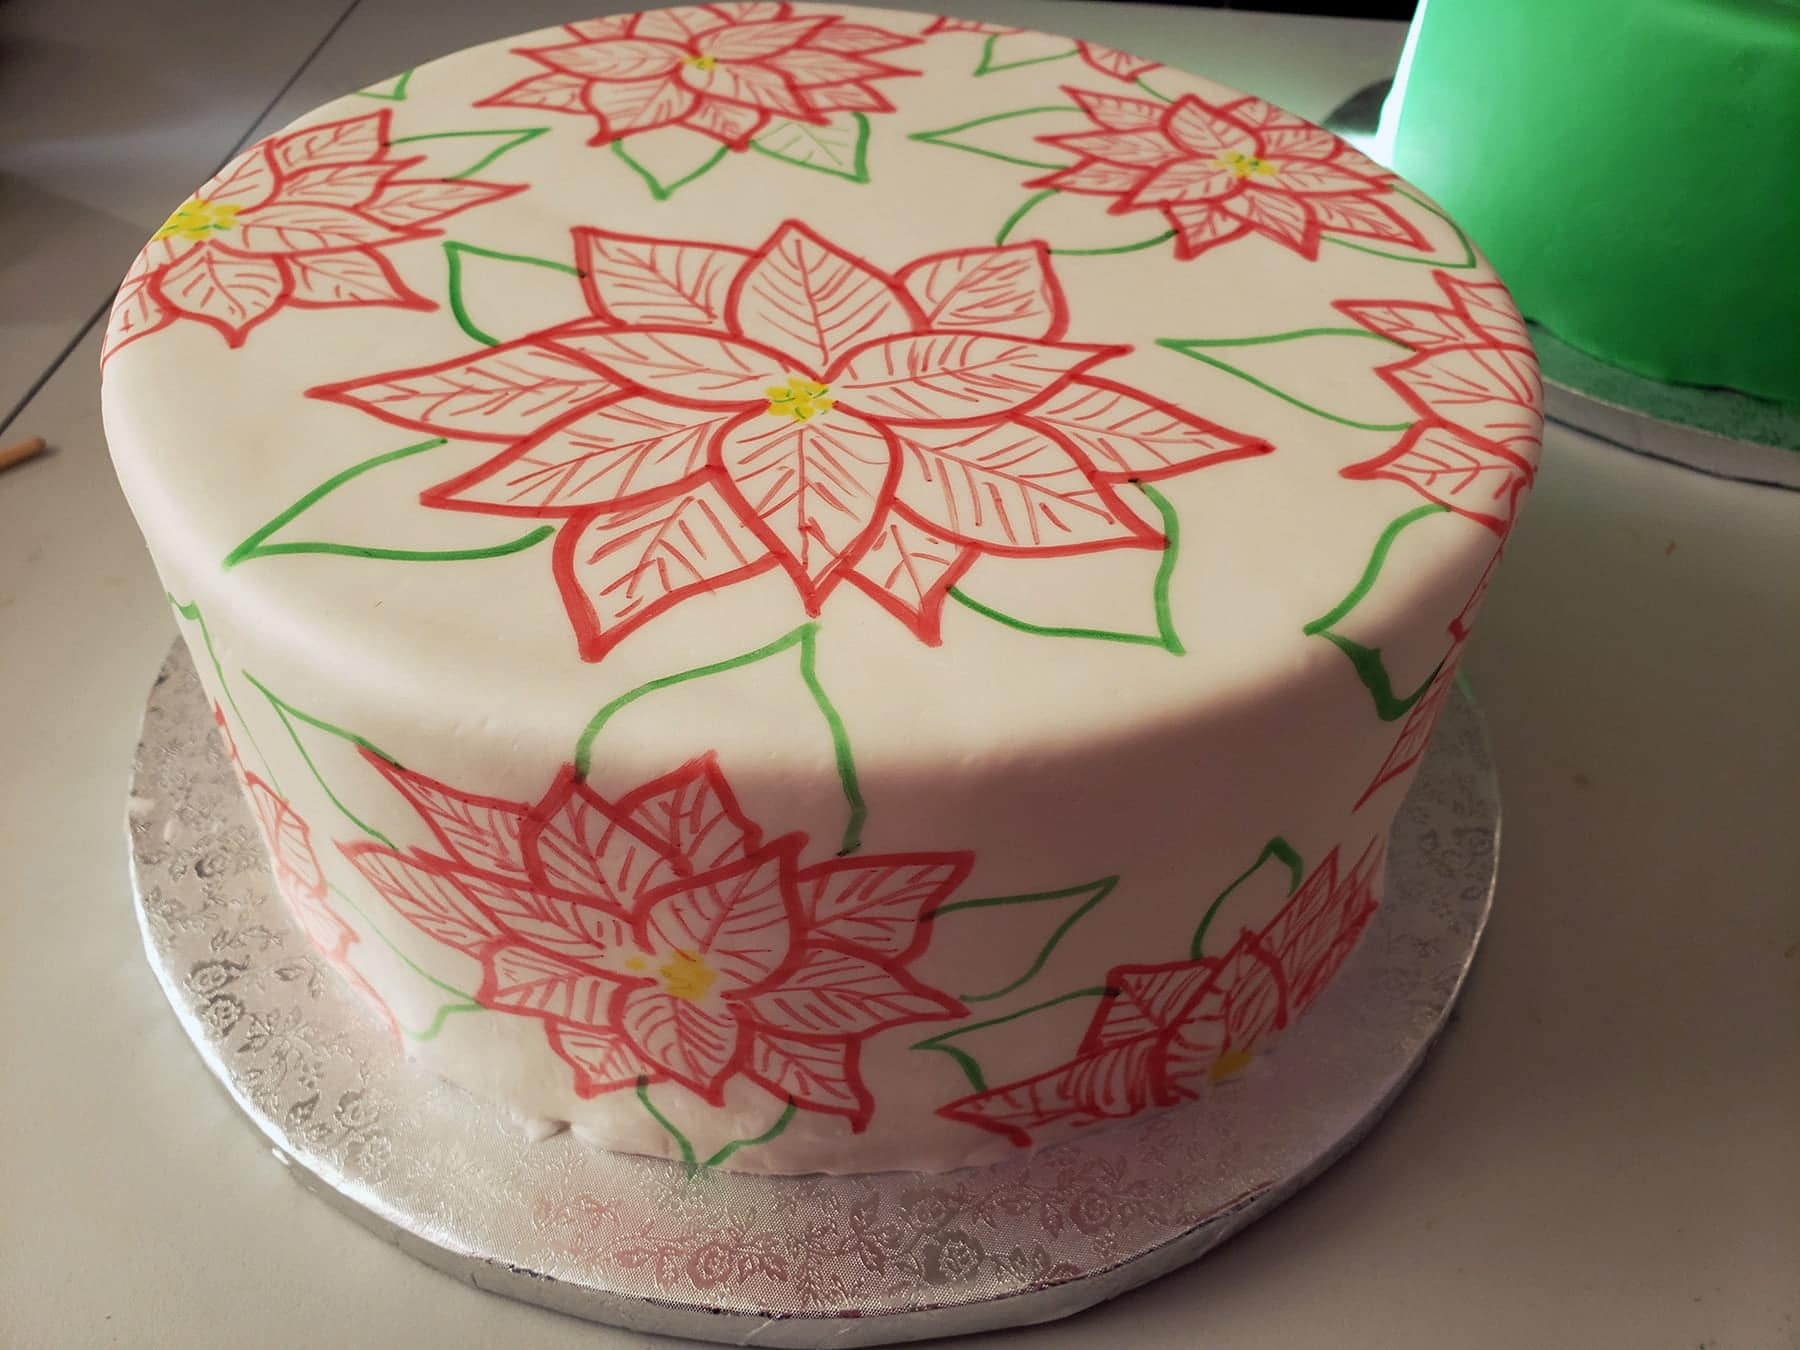 A large round cake covered in smooth white fondant has red poinsettias and green leaves drawn all over it.